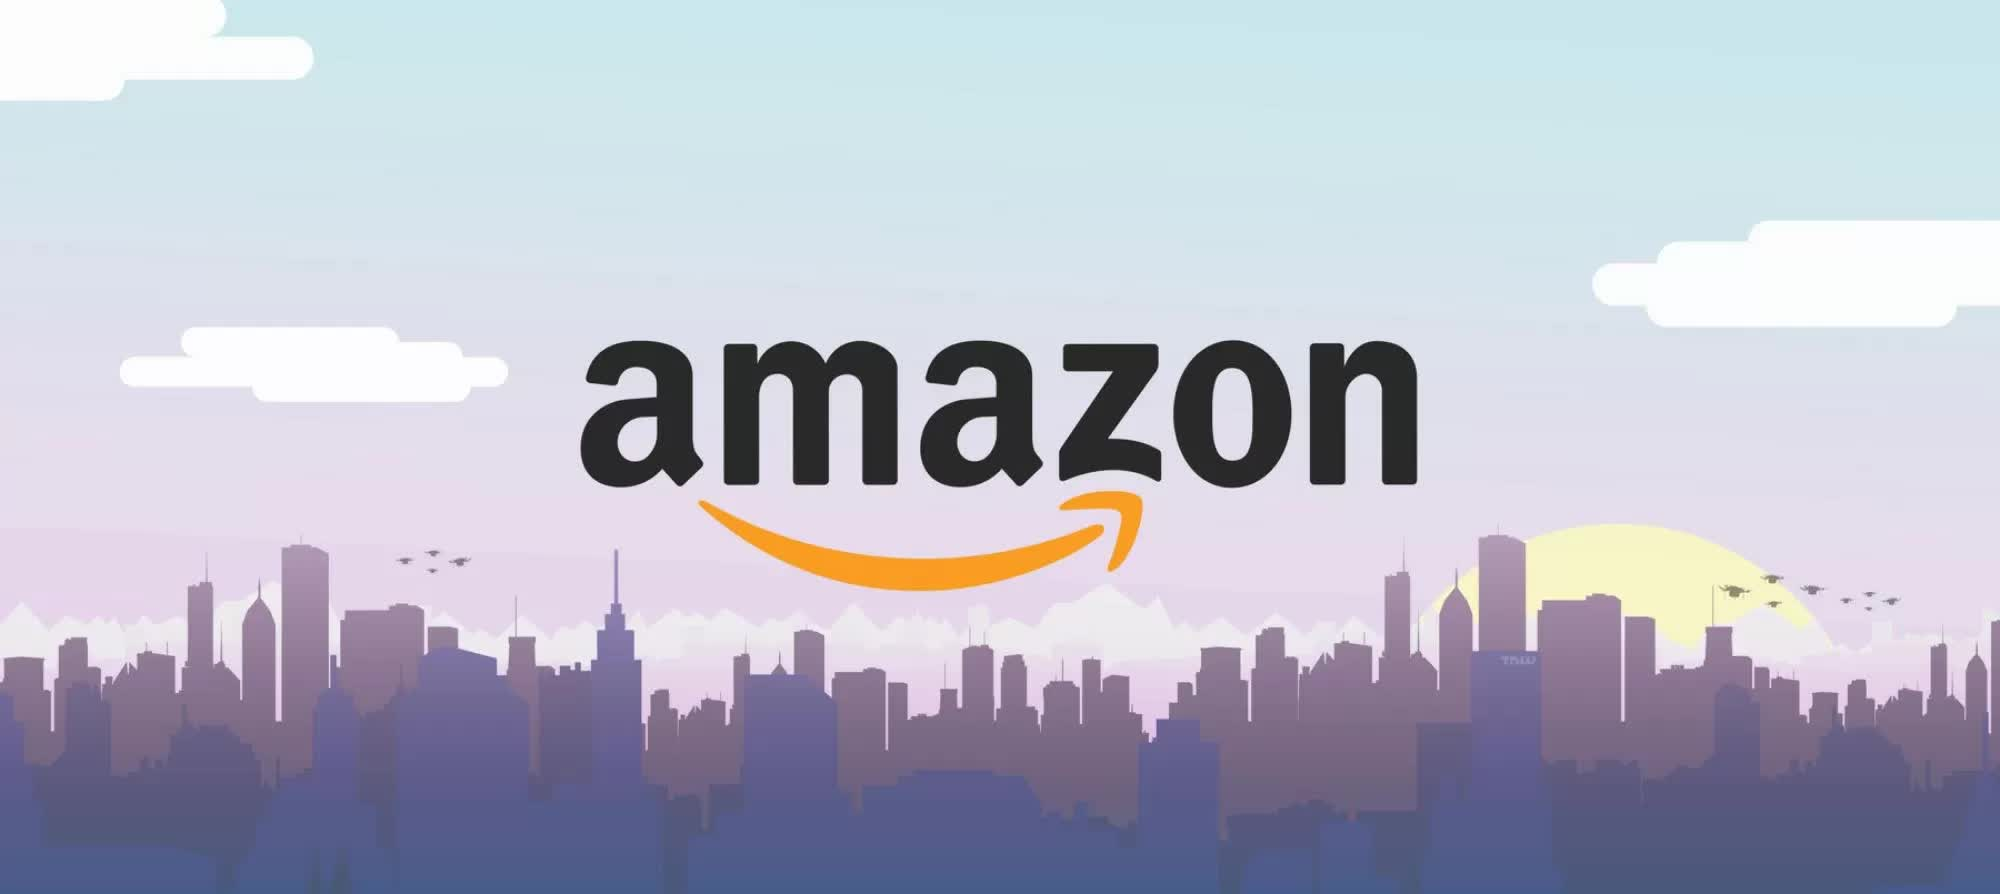 Amazon deletes 20,000 user reviews after finding evidence of suspicious activity thumbnail